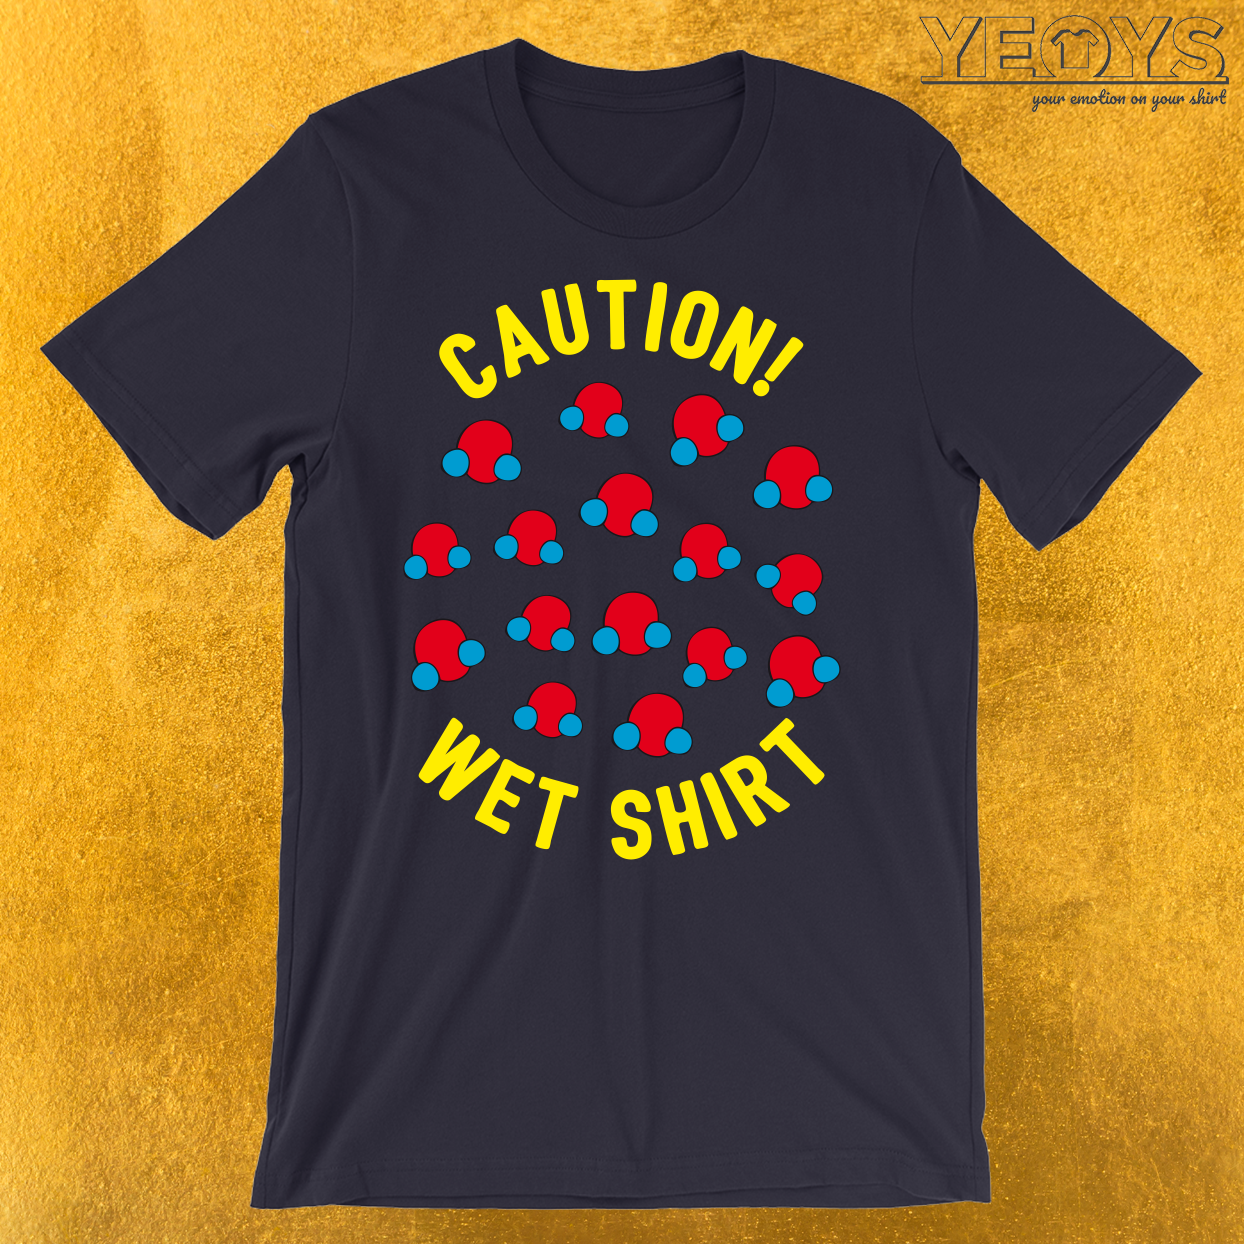 Caution Wet Shirt T-Shirt